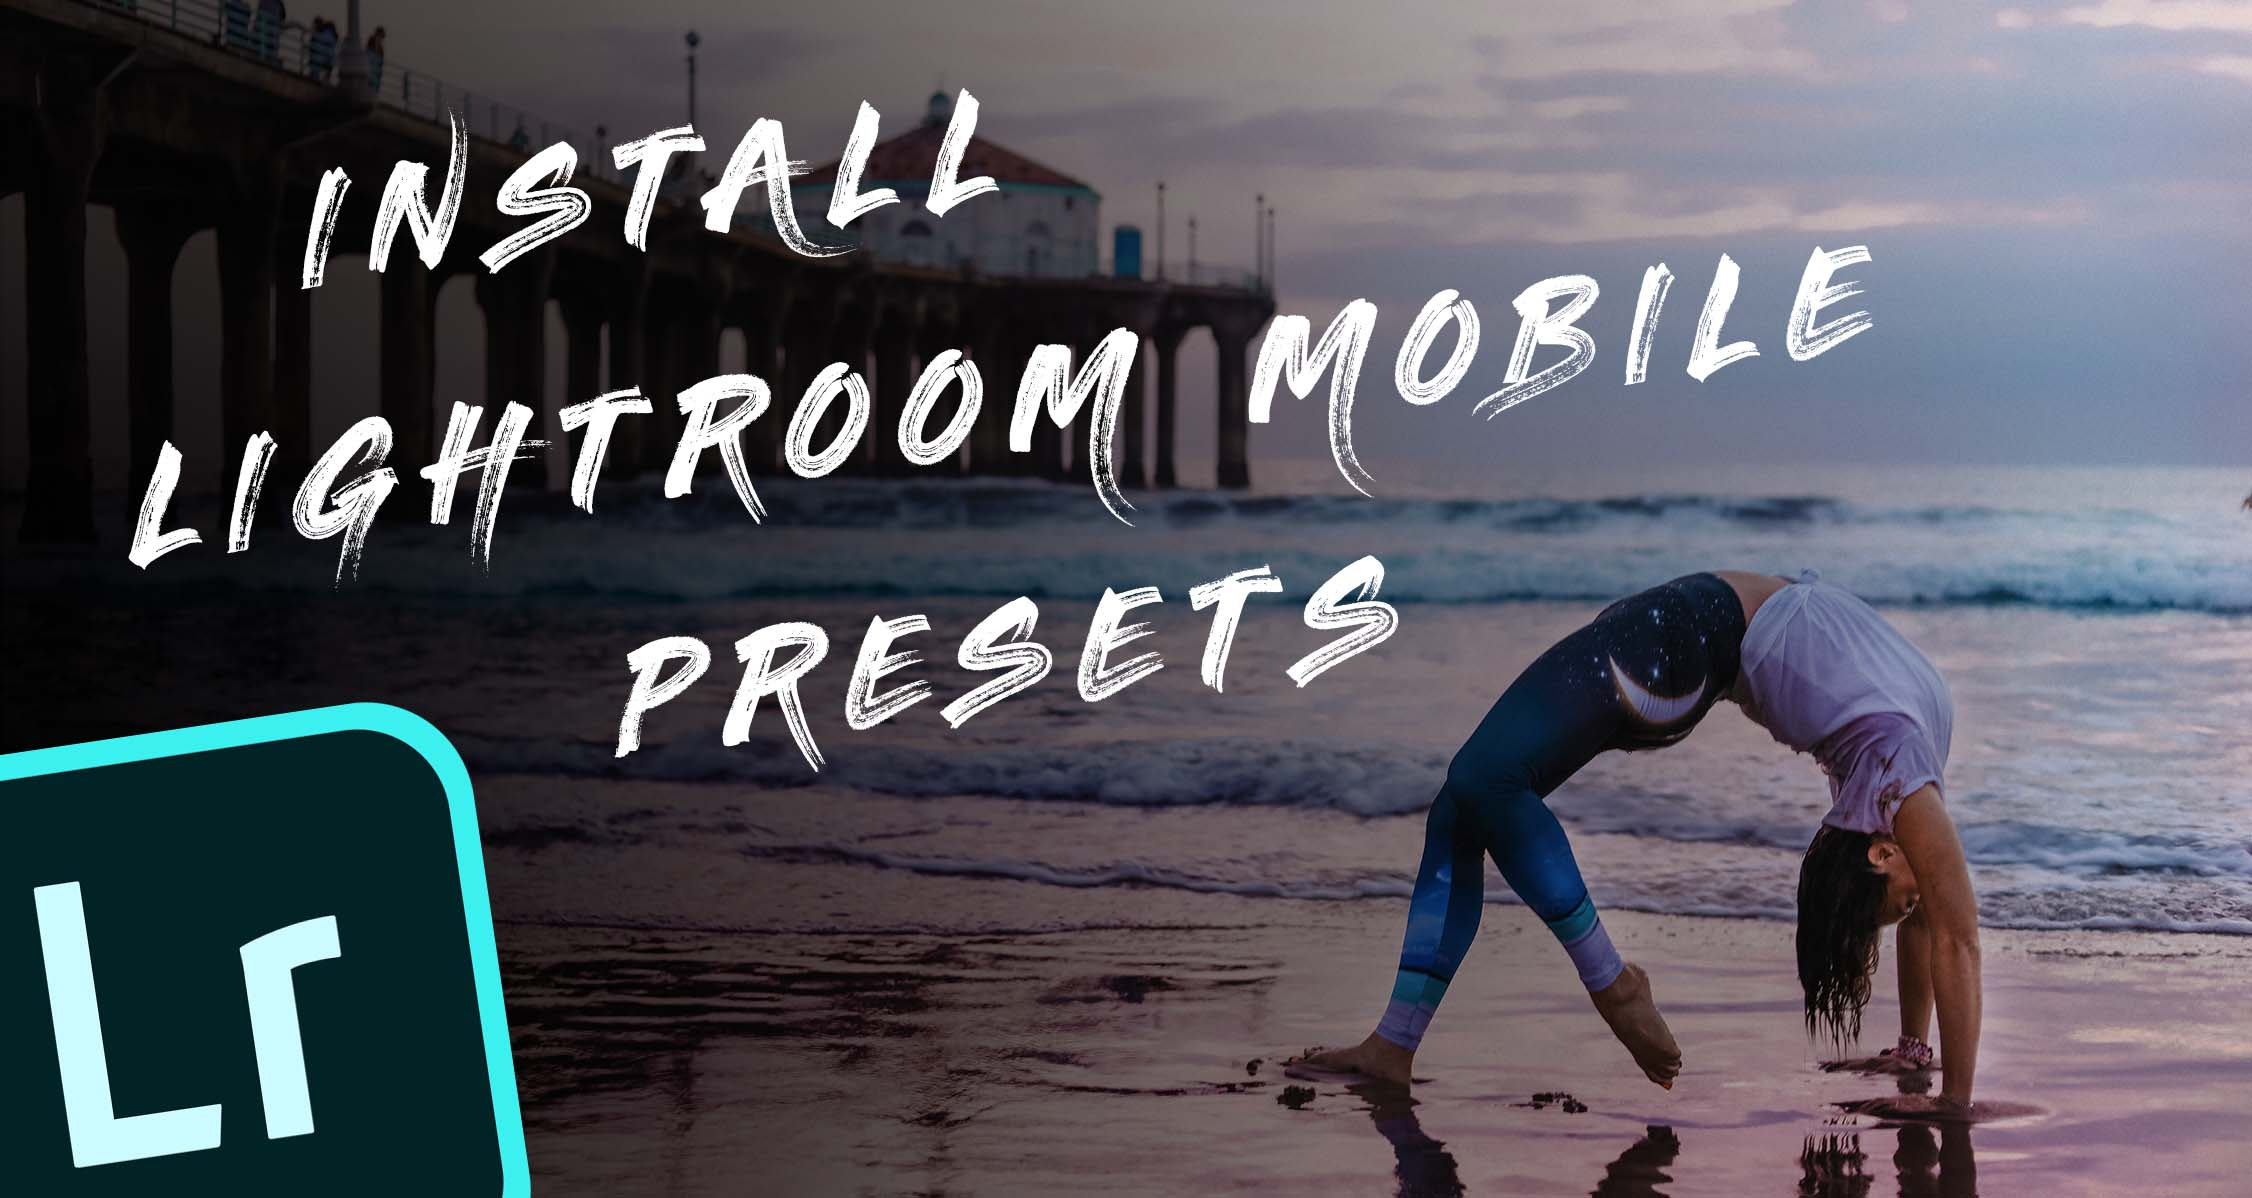 How to Install Lightroom Mobile Presets - Bree Pear